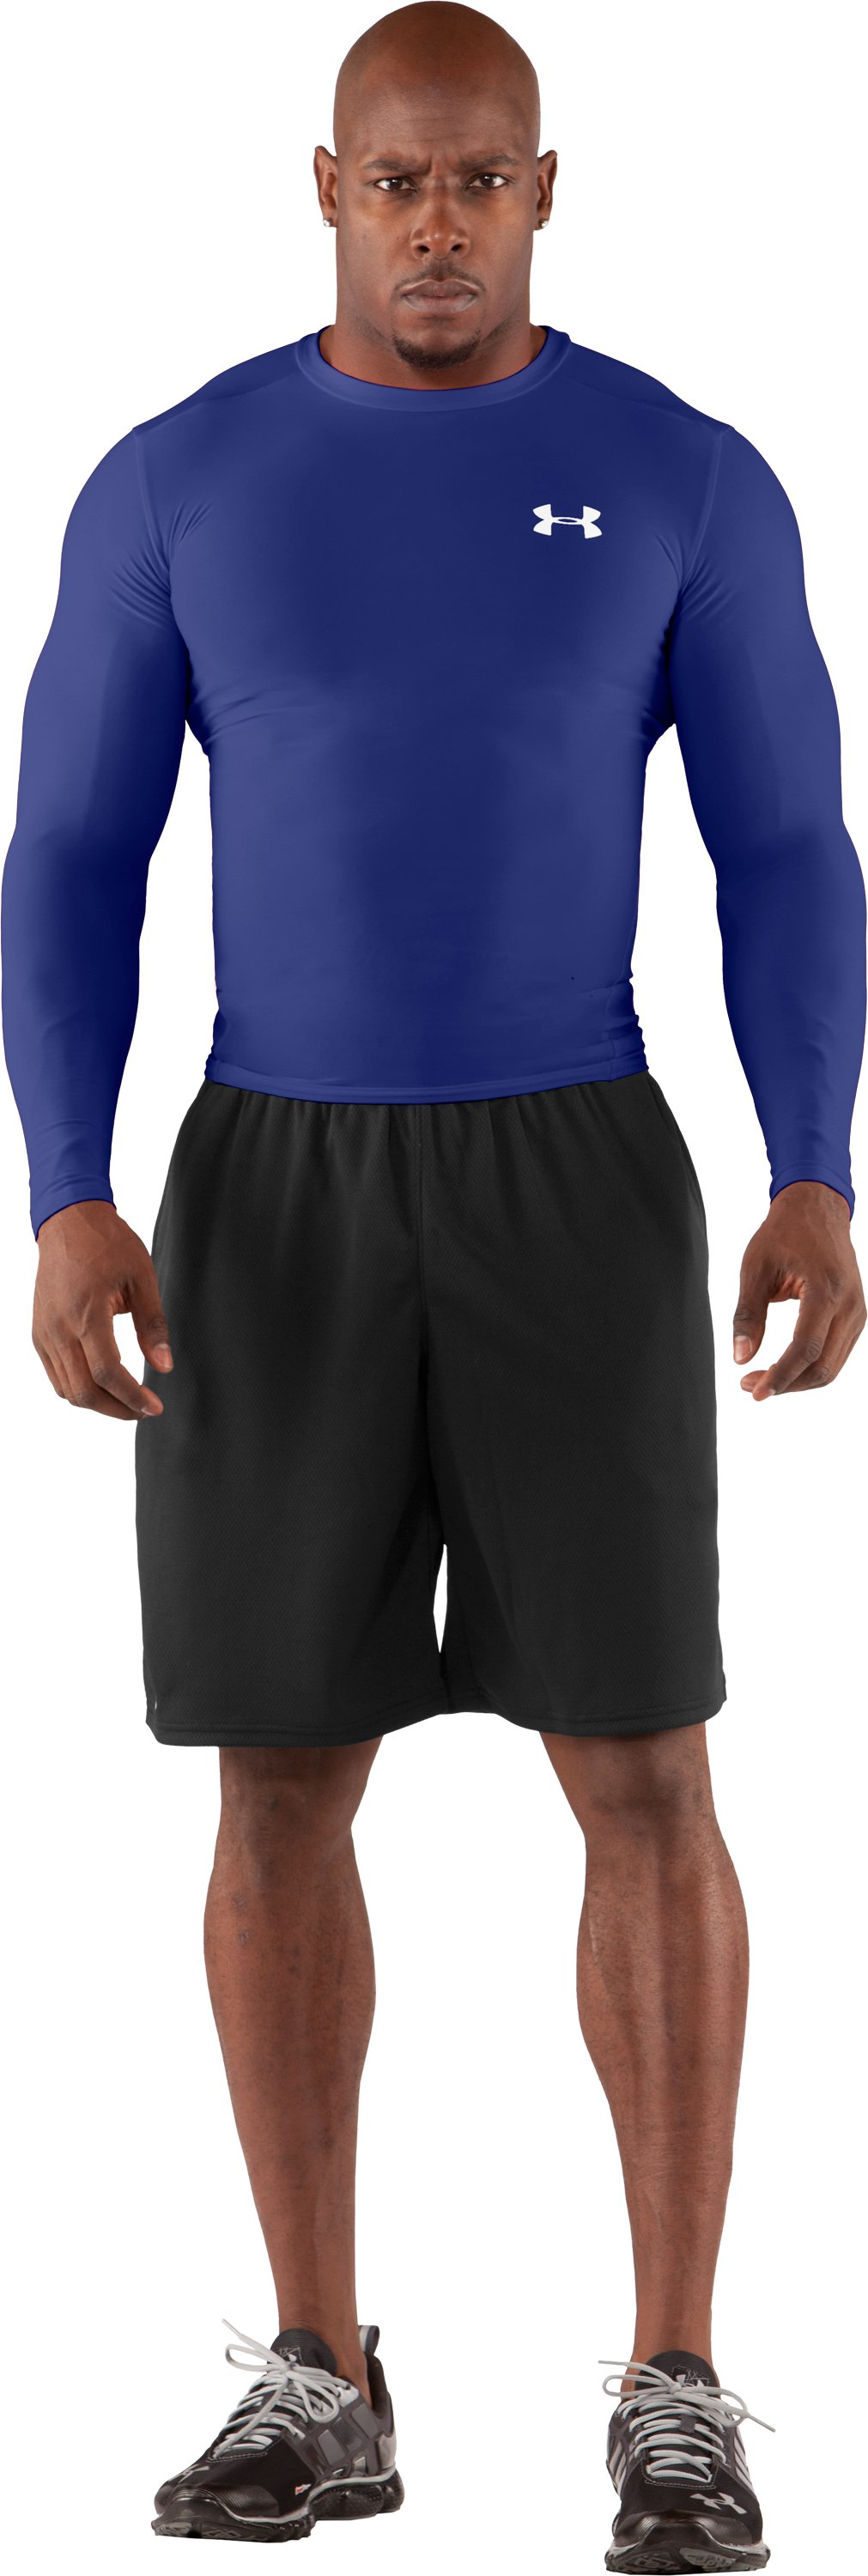 Men's HeatGear® Compression Long Sleeve T-Shirt, Royal, Front